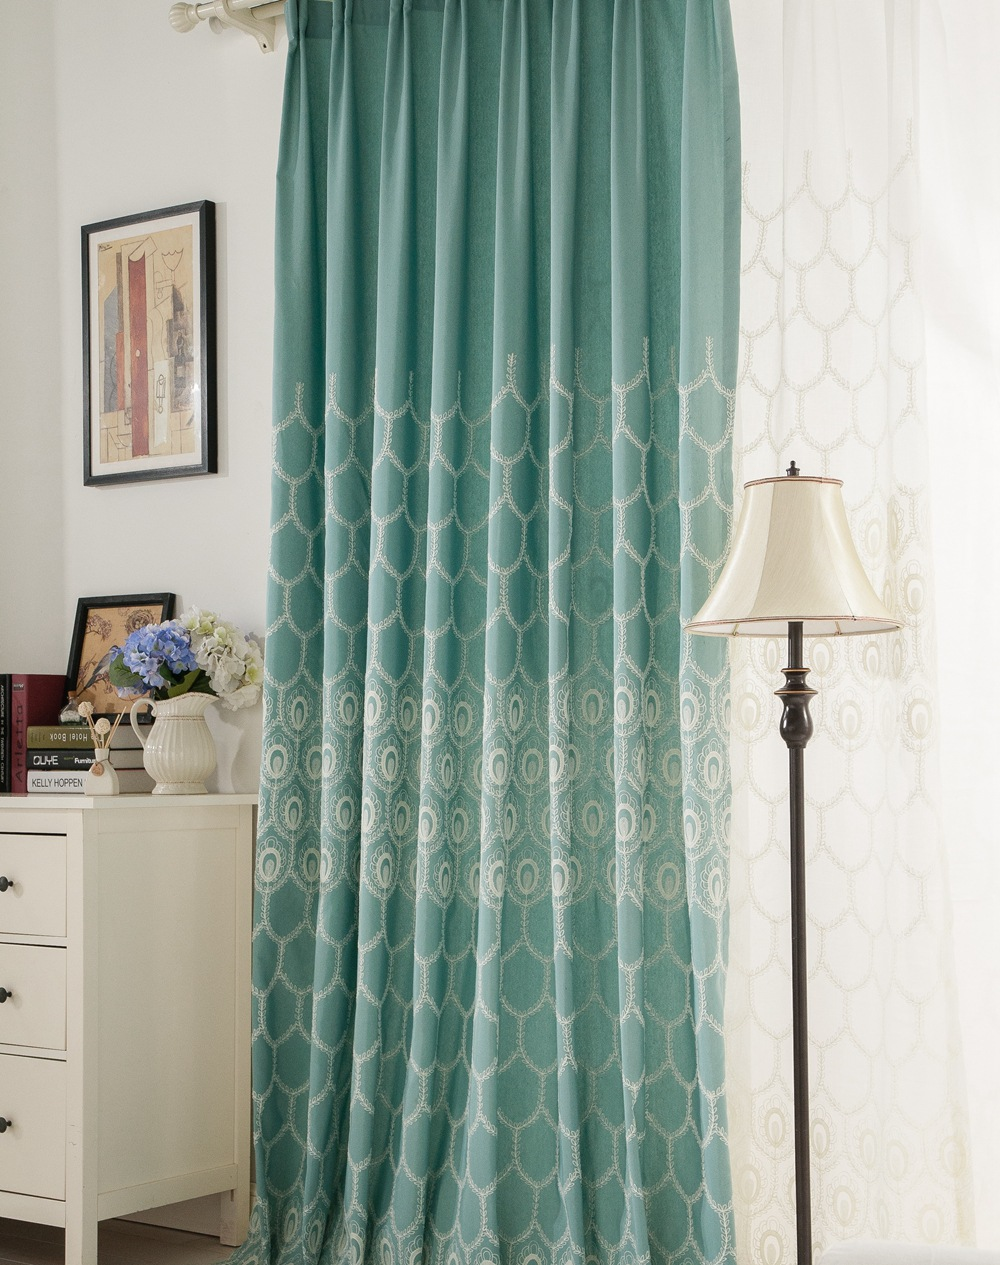 Phoenix Ling Cotton Embroidery Curtain With Special Cutting Edge